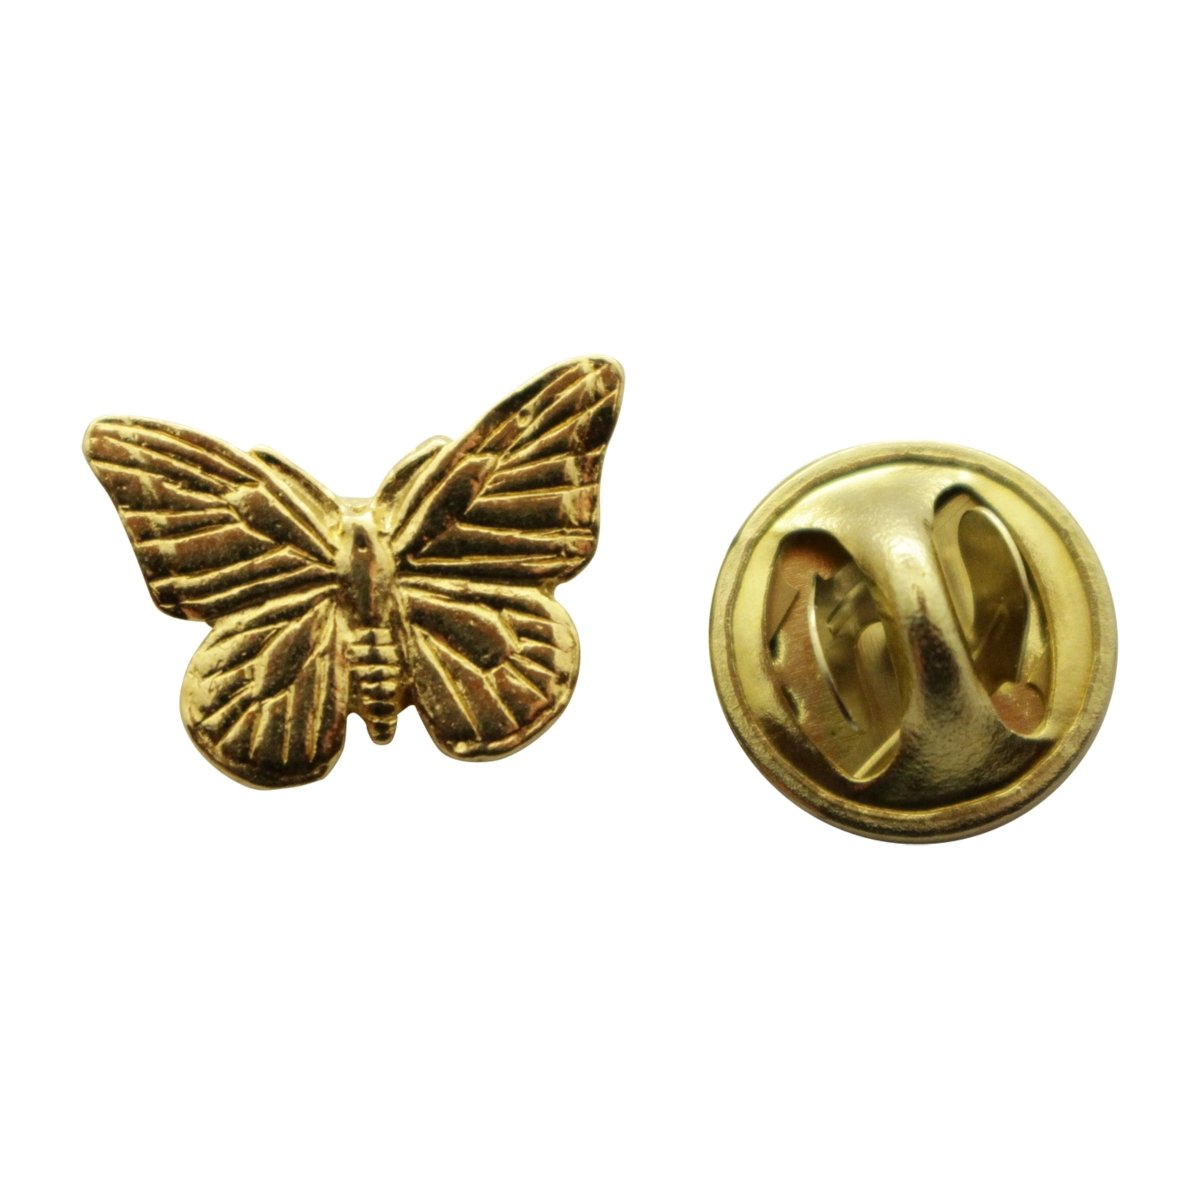 Monarch Butterfly Mini Pin ~ 24K Gold ~ Miniature Lapel Pin ~ Sarah's Treats & Treasures